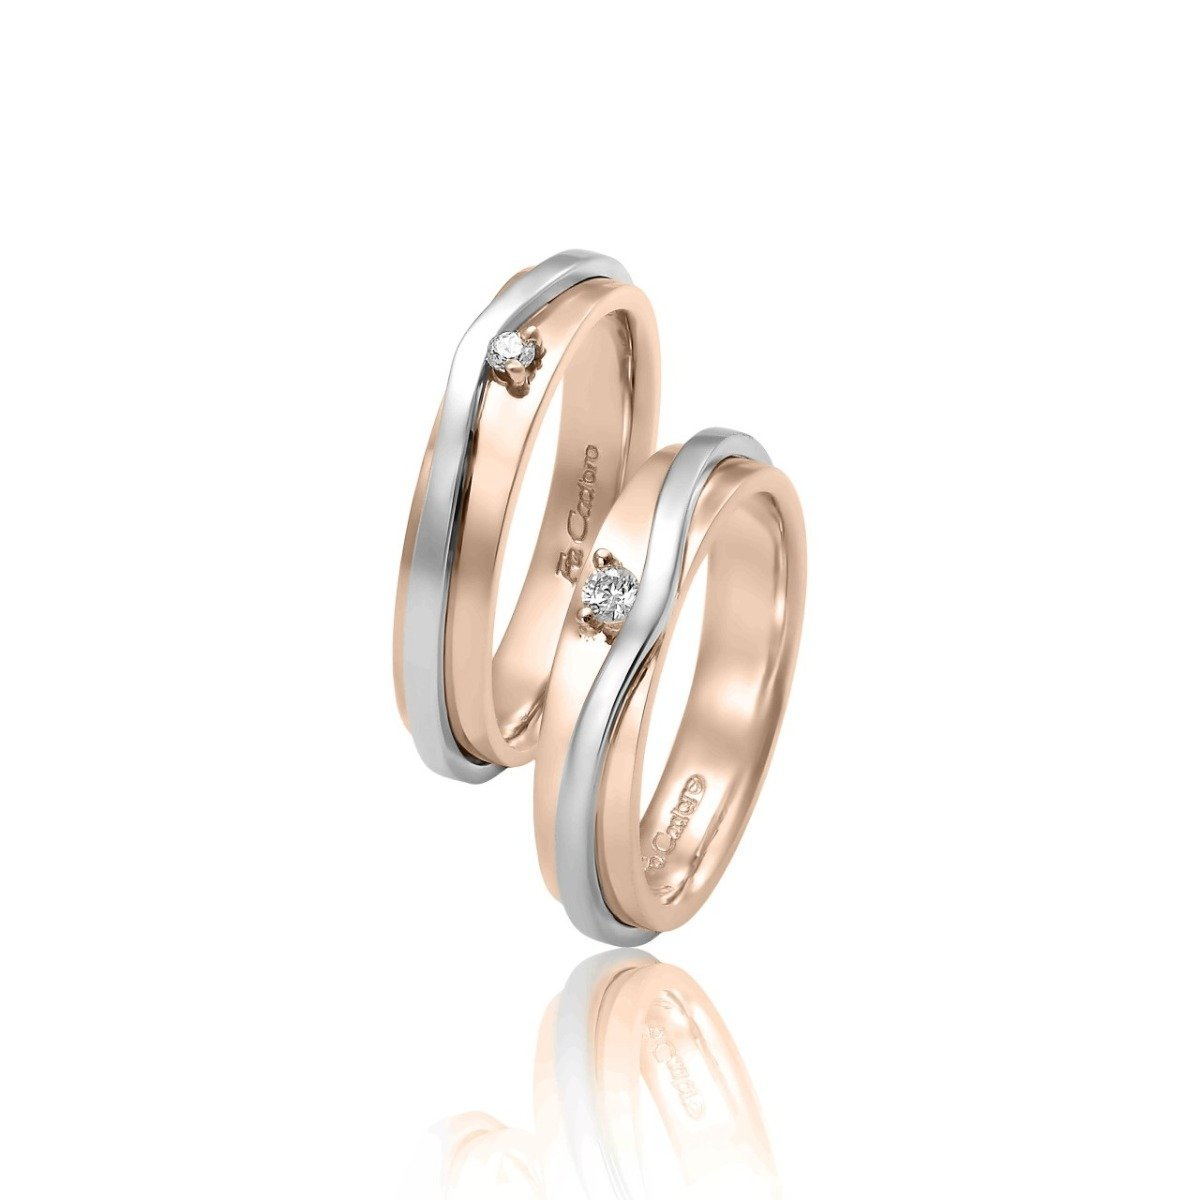 FaCad'oro WR-30 14ct Gold Wedding Rings - Goldy Jewelry Store